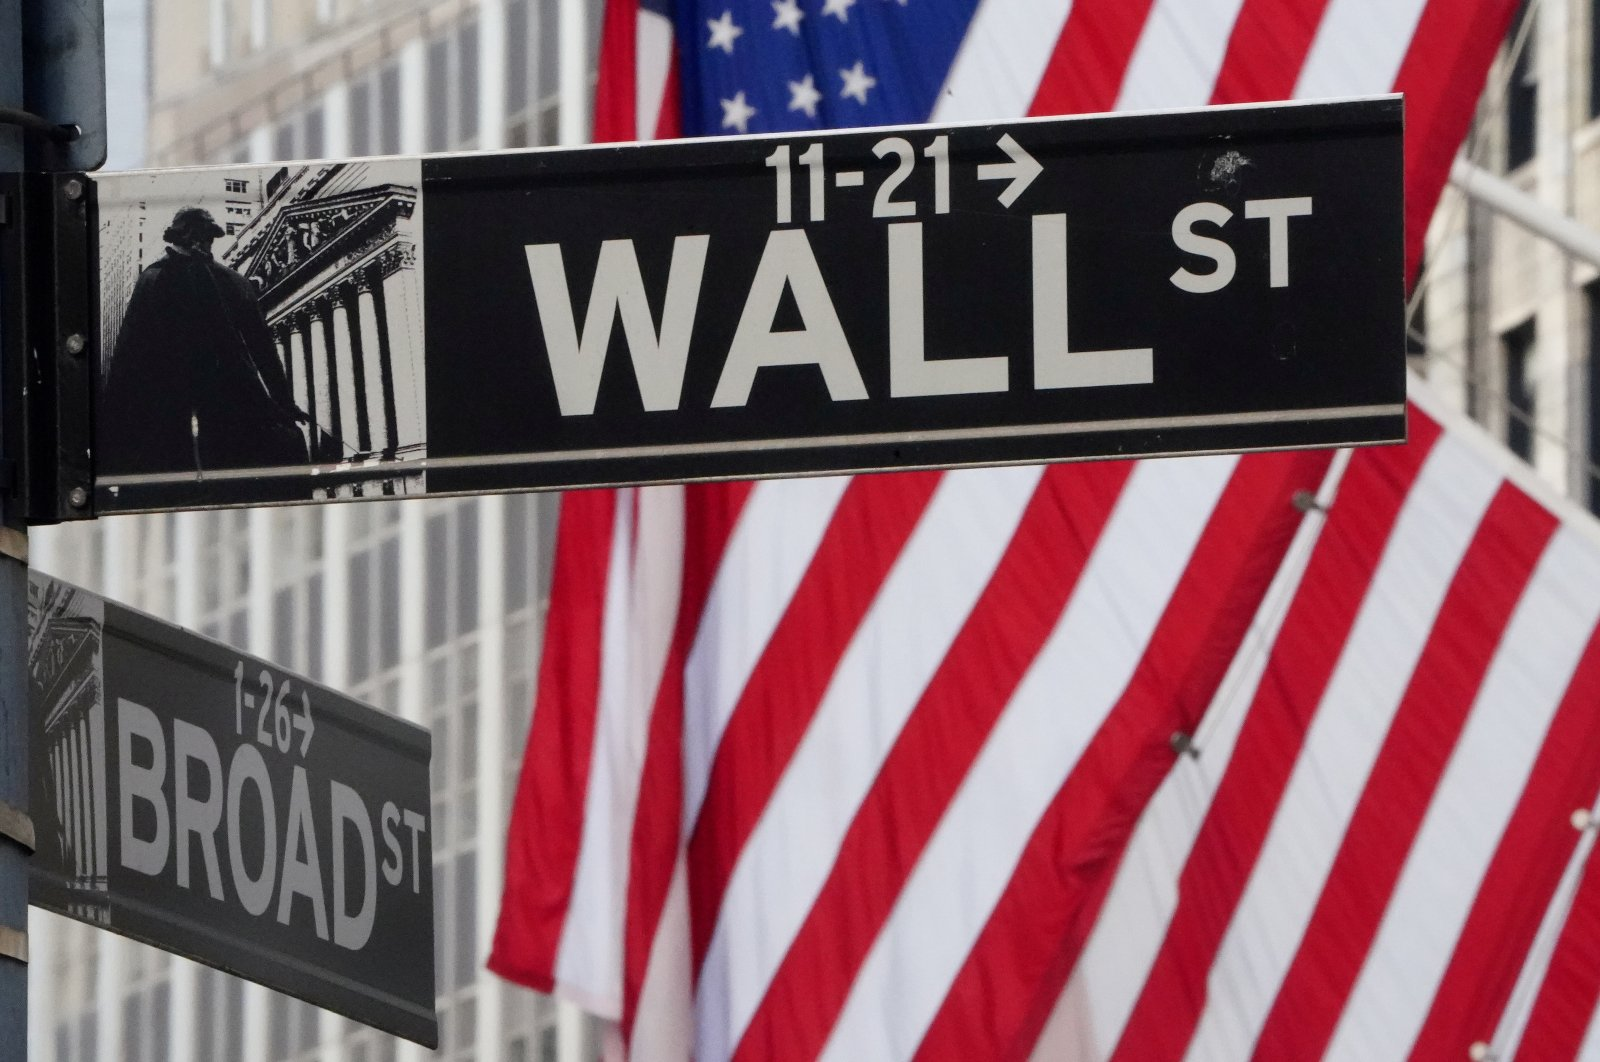 The Wall Street sign is pictured at the New York Stock exchange (NYSE) in the Manhattan borough of New York City, New York, U.S., March 9, 2020. (Reuters Photo)